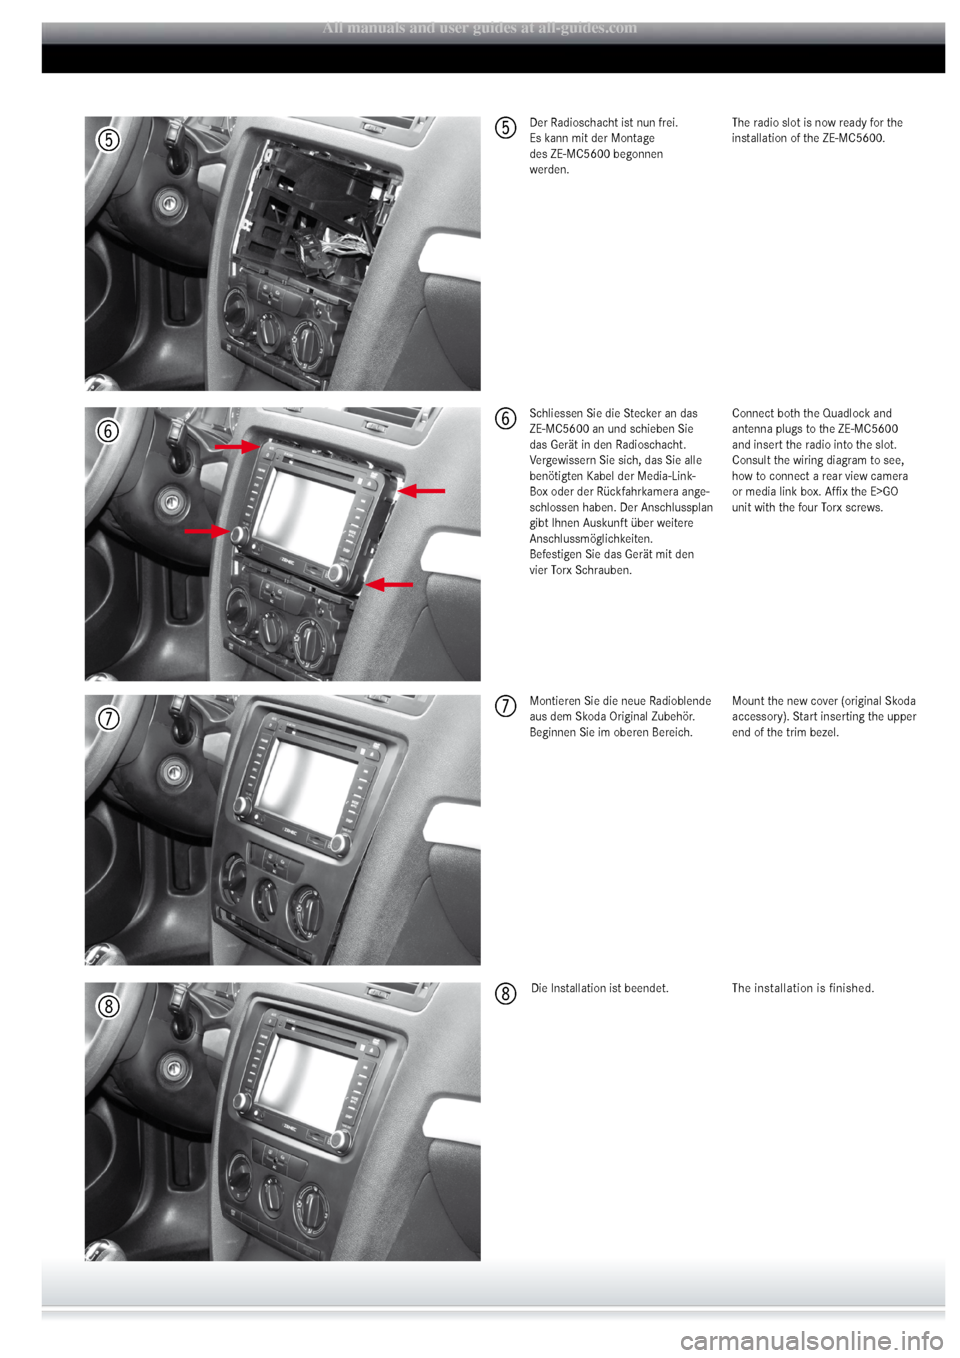 SKODA OCTAVIA 2008 2.G / (1Z) ZEMC5600 Mounting Instruction, Page 3